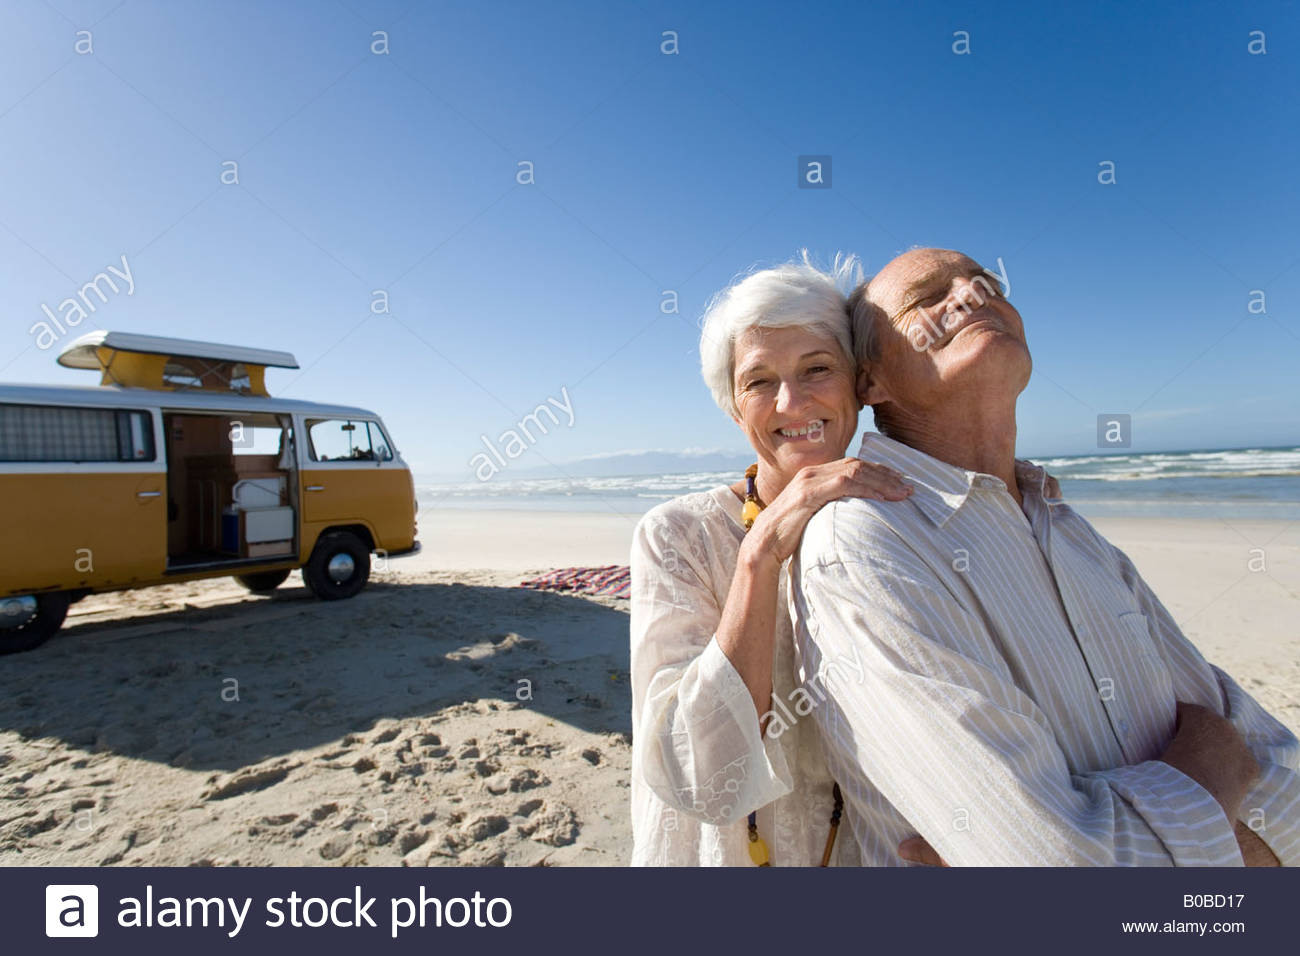 Senior woman embracing senior man from behind on beach by camper van, smiling, portrait - Stock Image